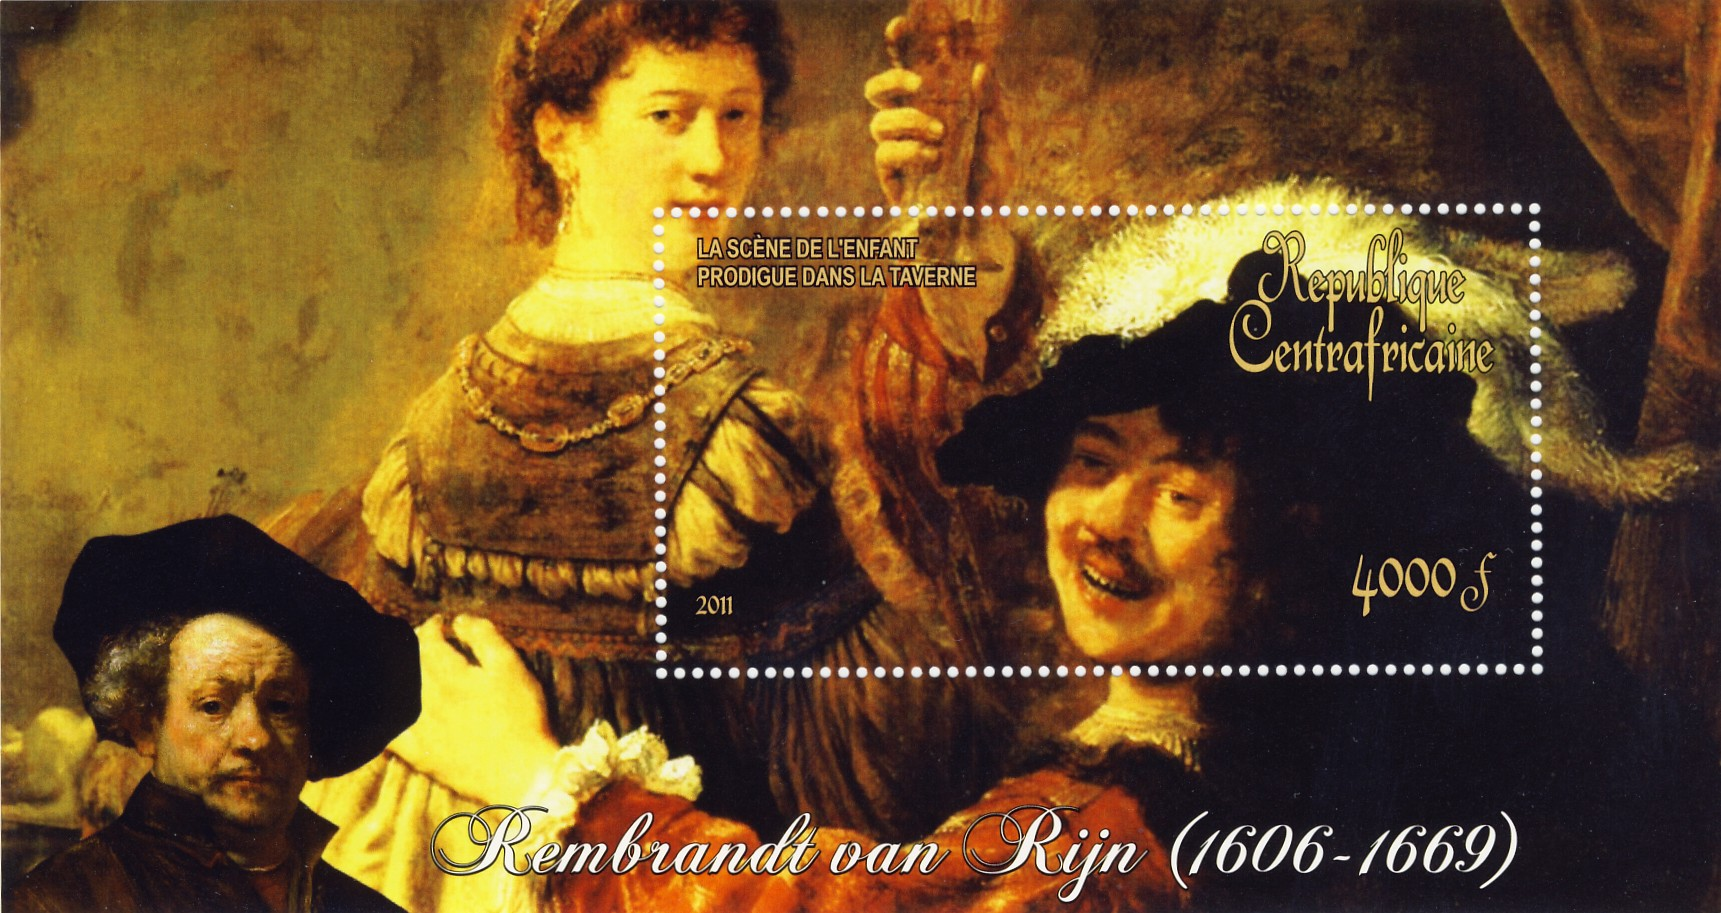 Paintings of  Rembrandt van Rijn, (1606-1669). (La sciene de l'enfant prodique dans la taverne) - Issue of Central African republic postage stamps